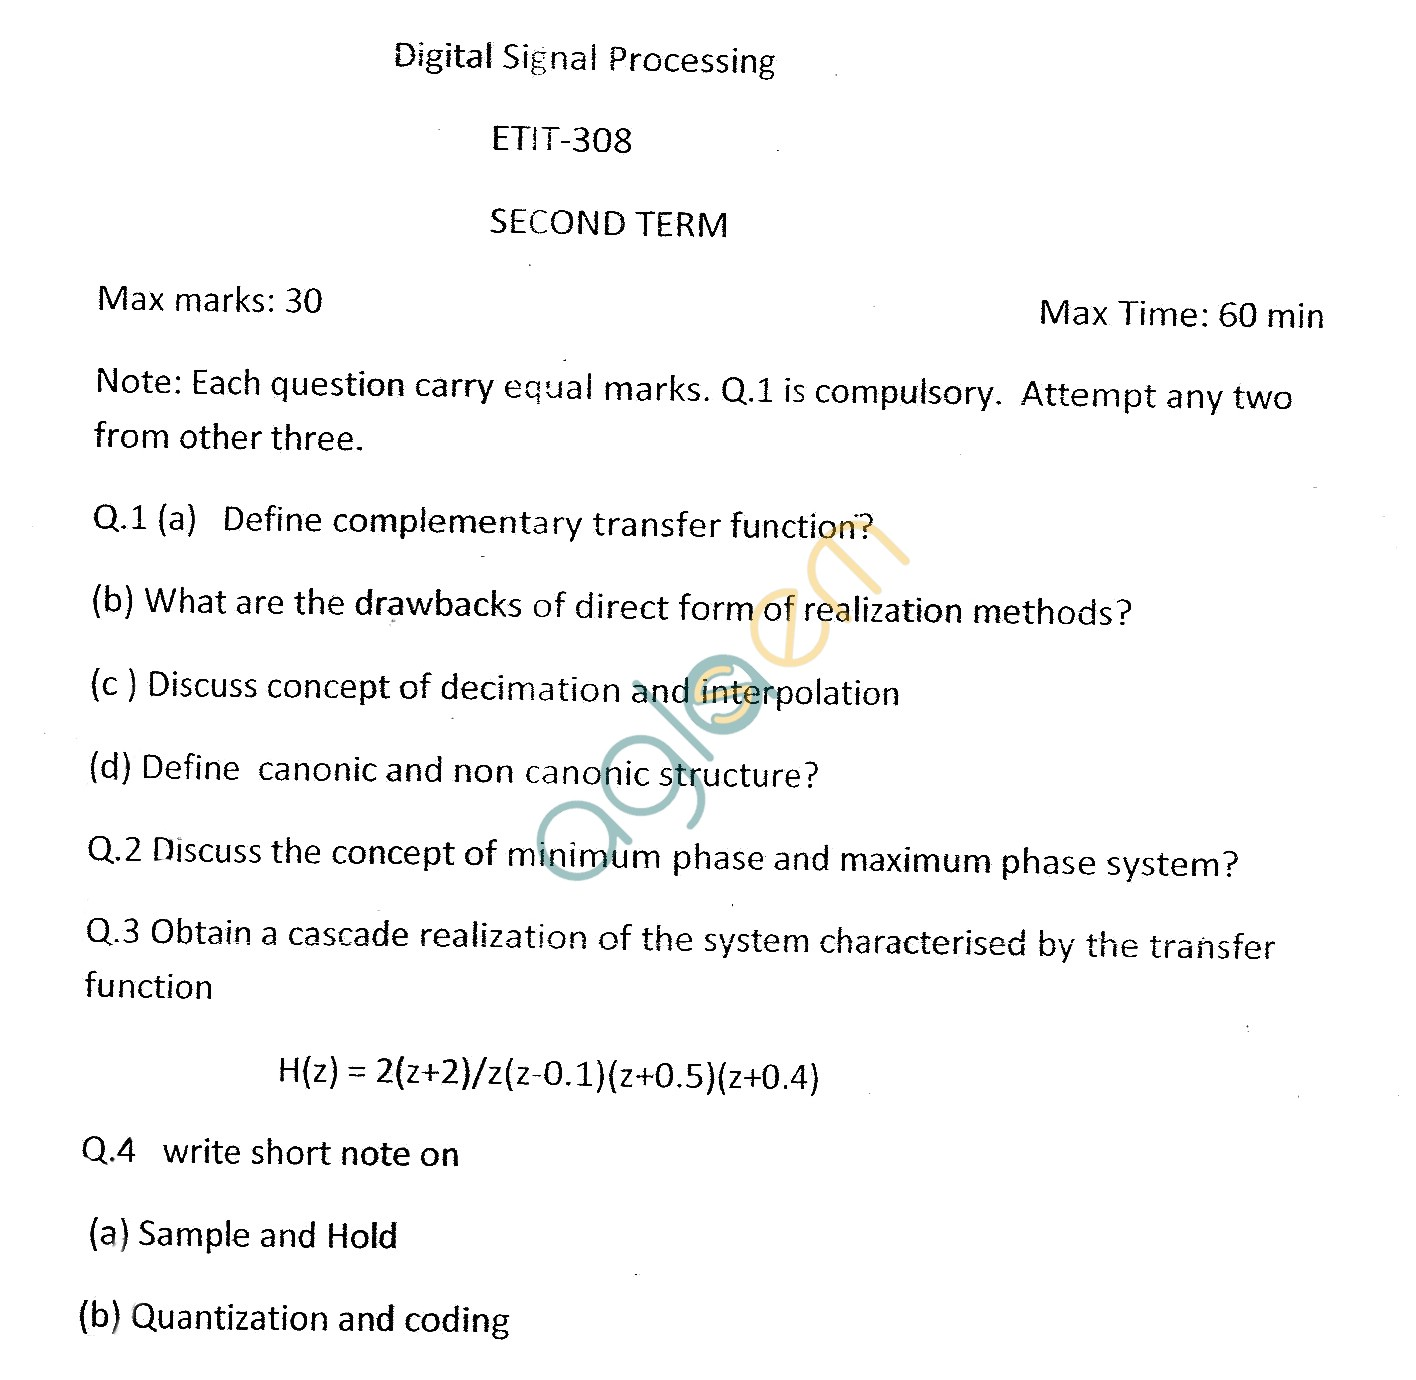 GGSIPU Question Papers Sixth Semester – Second Term 2013 – ETIT-308